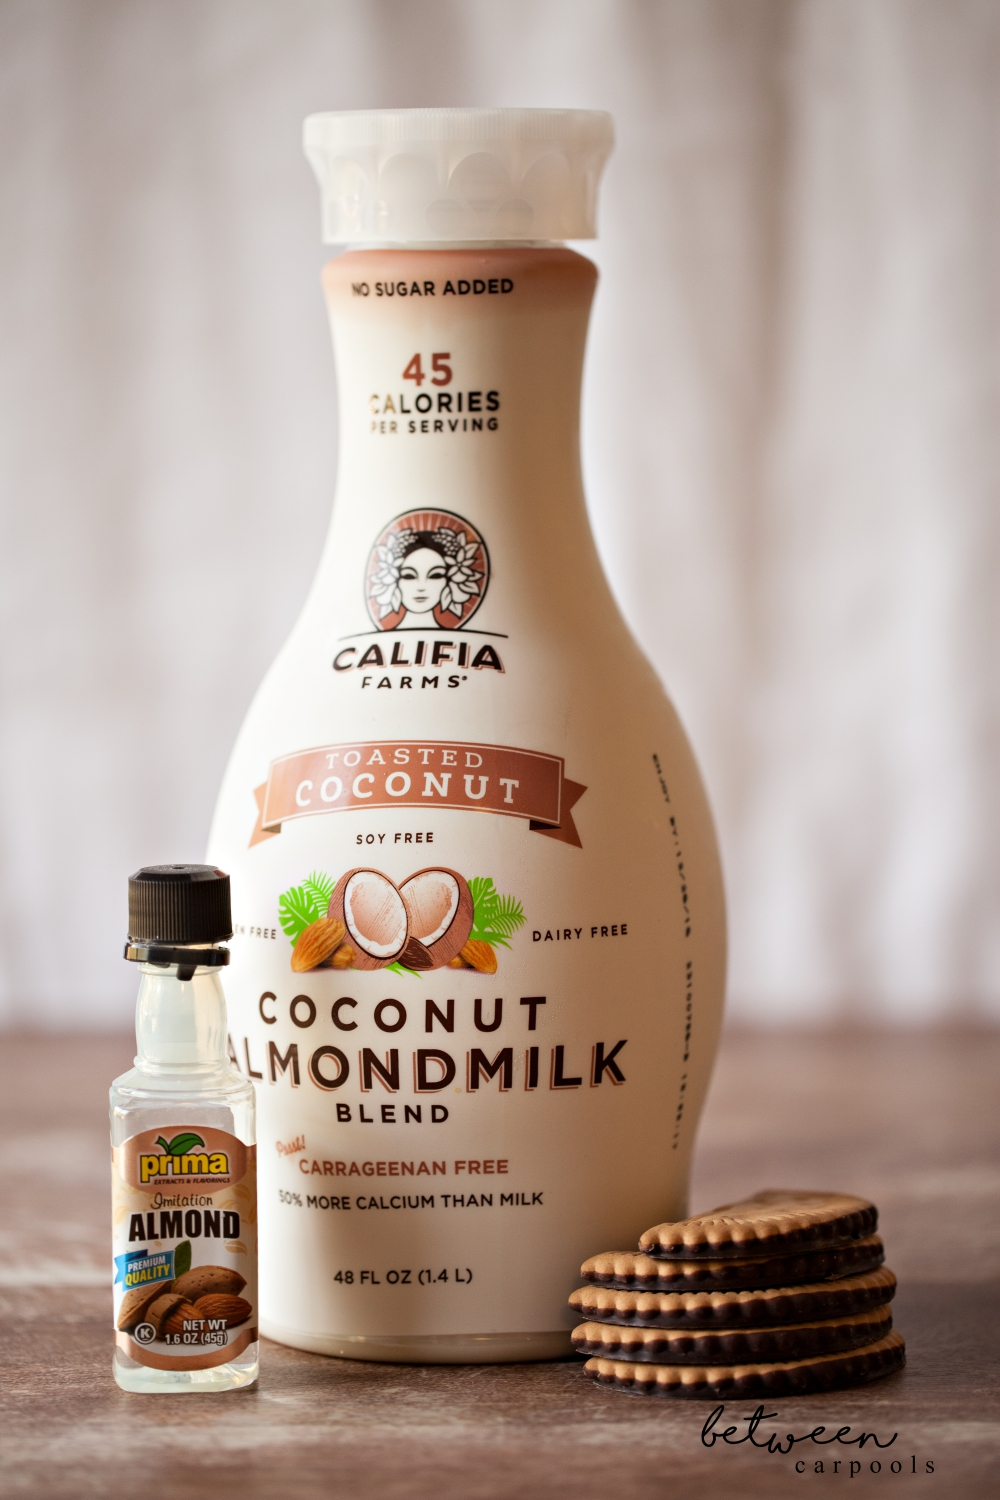 This coconut almond milk blend goes really well in an iced coffee or slushie when you can't have milk.